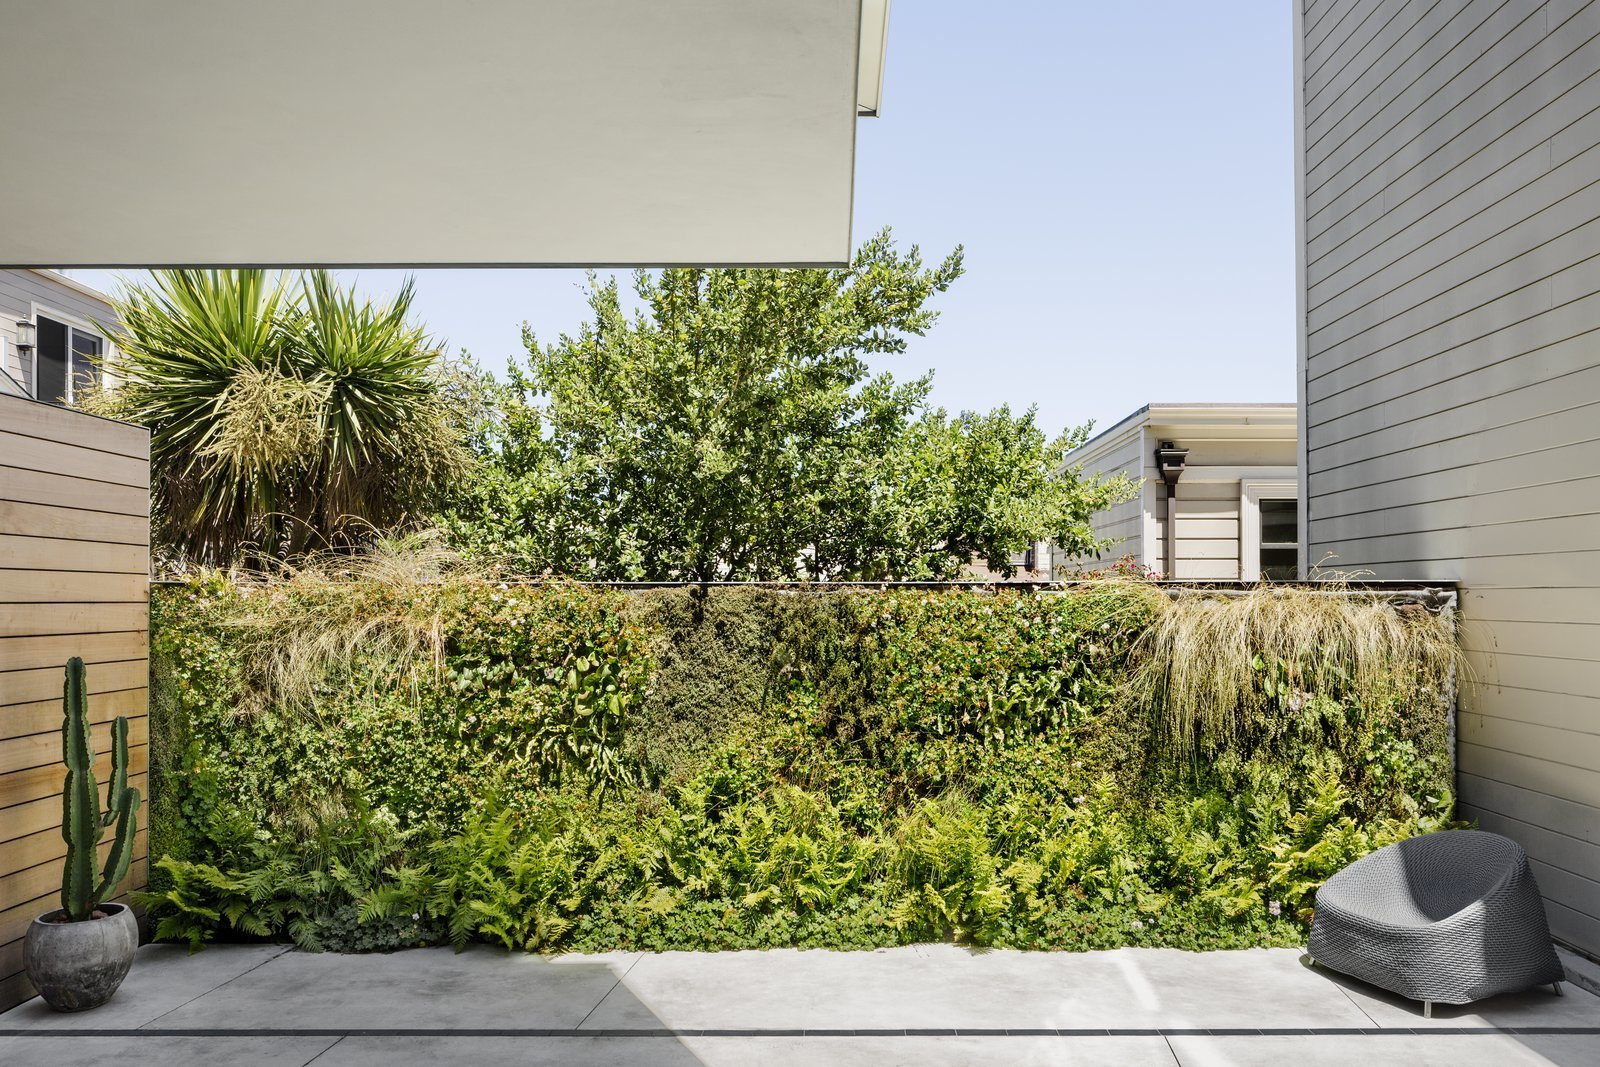 A living wall by Habitat Horticulture brings life to the compact backyard. Tagged: Outdoor, Back Yard, Shrubs, Trees, Gardens, Small Patio, Porch, Deck, Concrete Patio, Porch, Deck, and Metal Fence. A Historic Victorian in San Francisco Is Meticulously Transformed Into a Modern Family Home - Photo 24 of 27